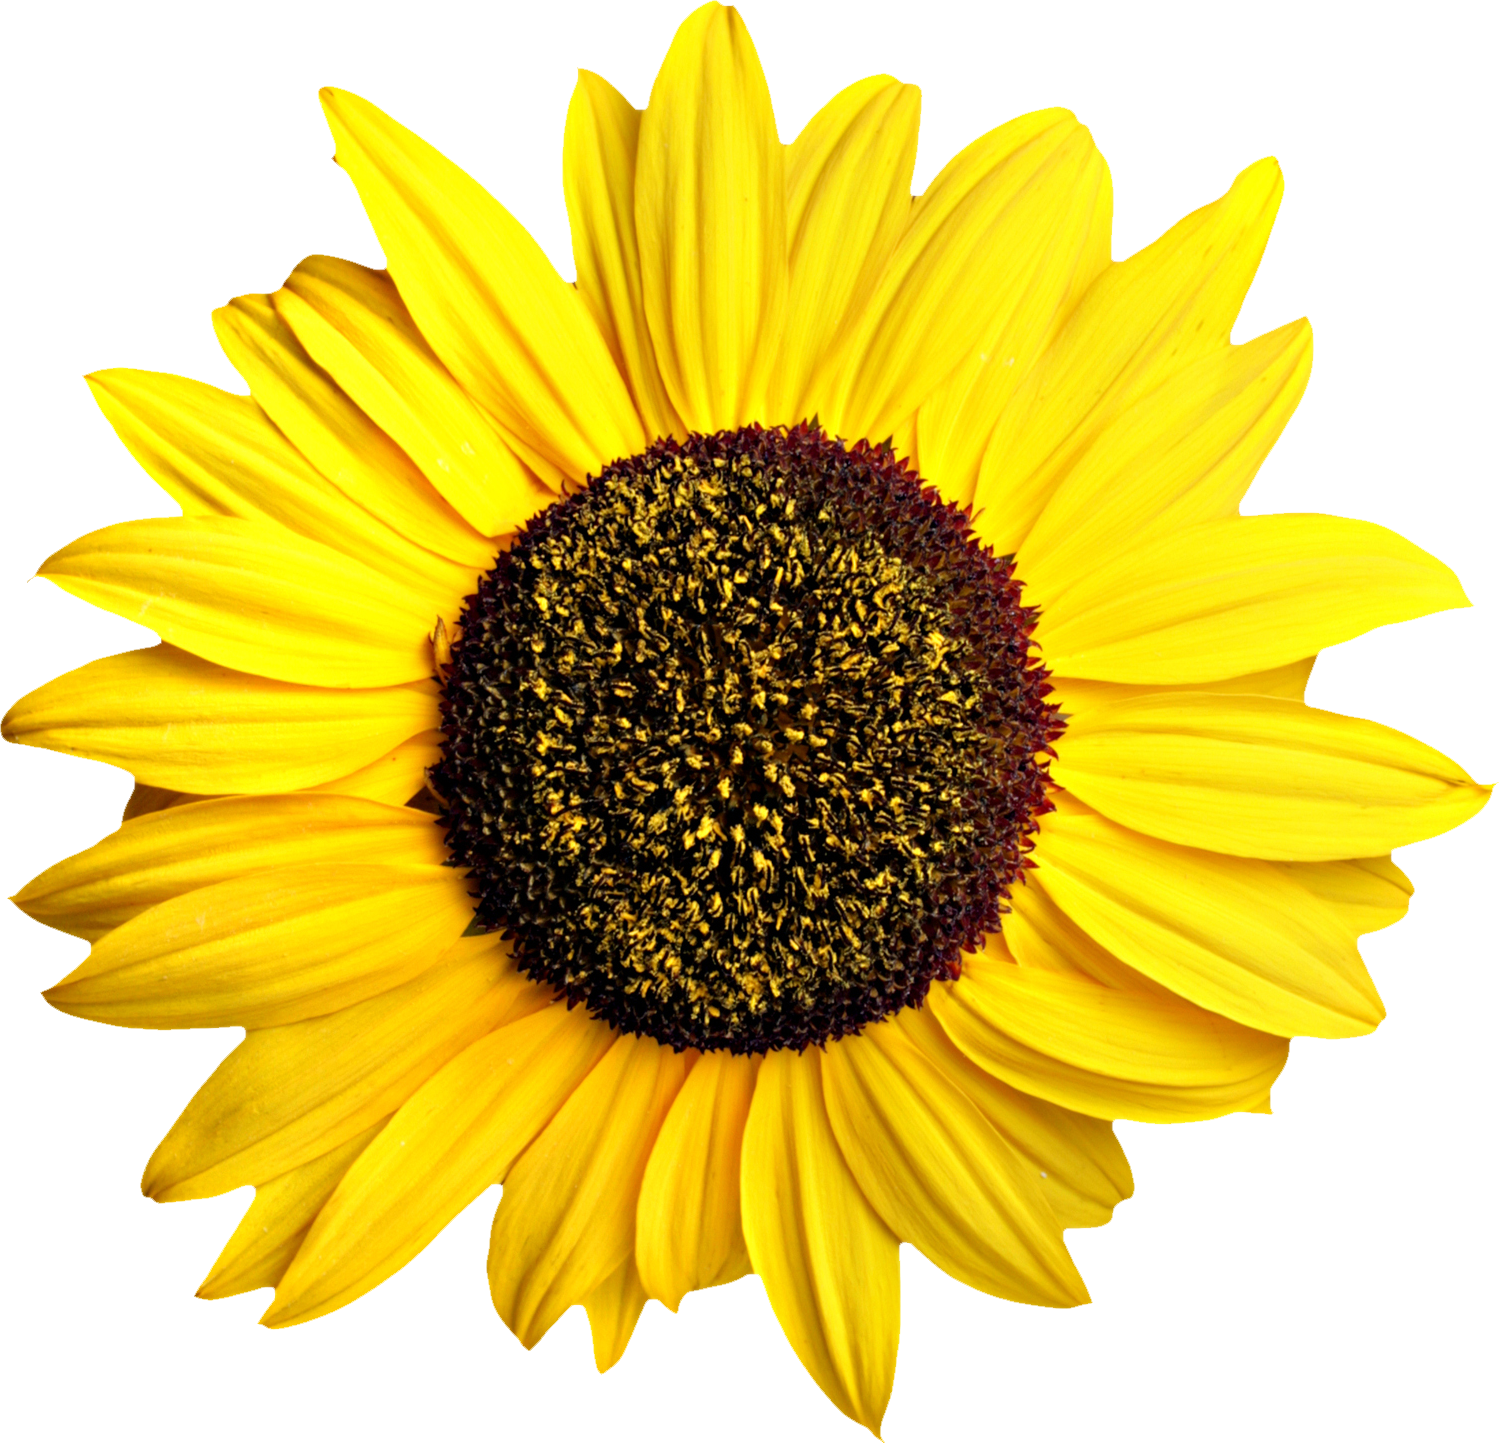 Sunflowers png root. Sunflower free vectors pinterest